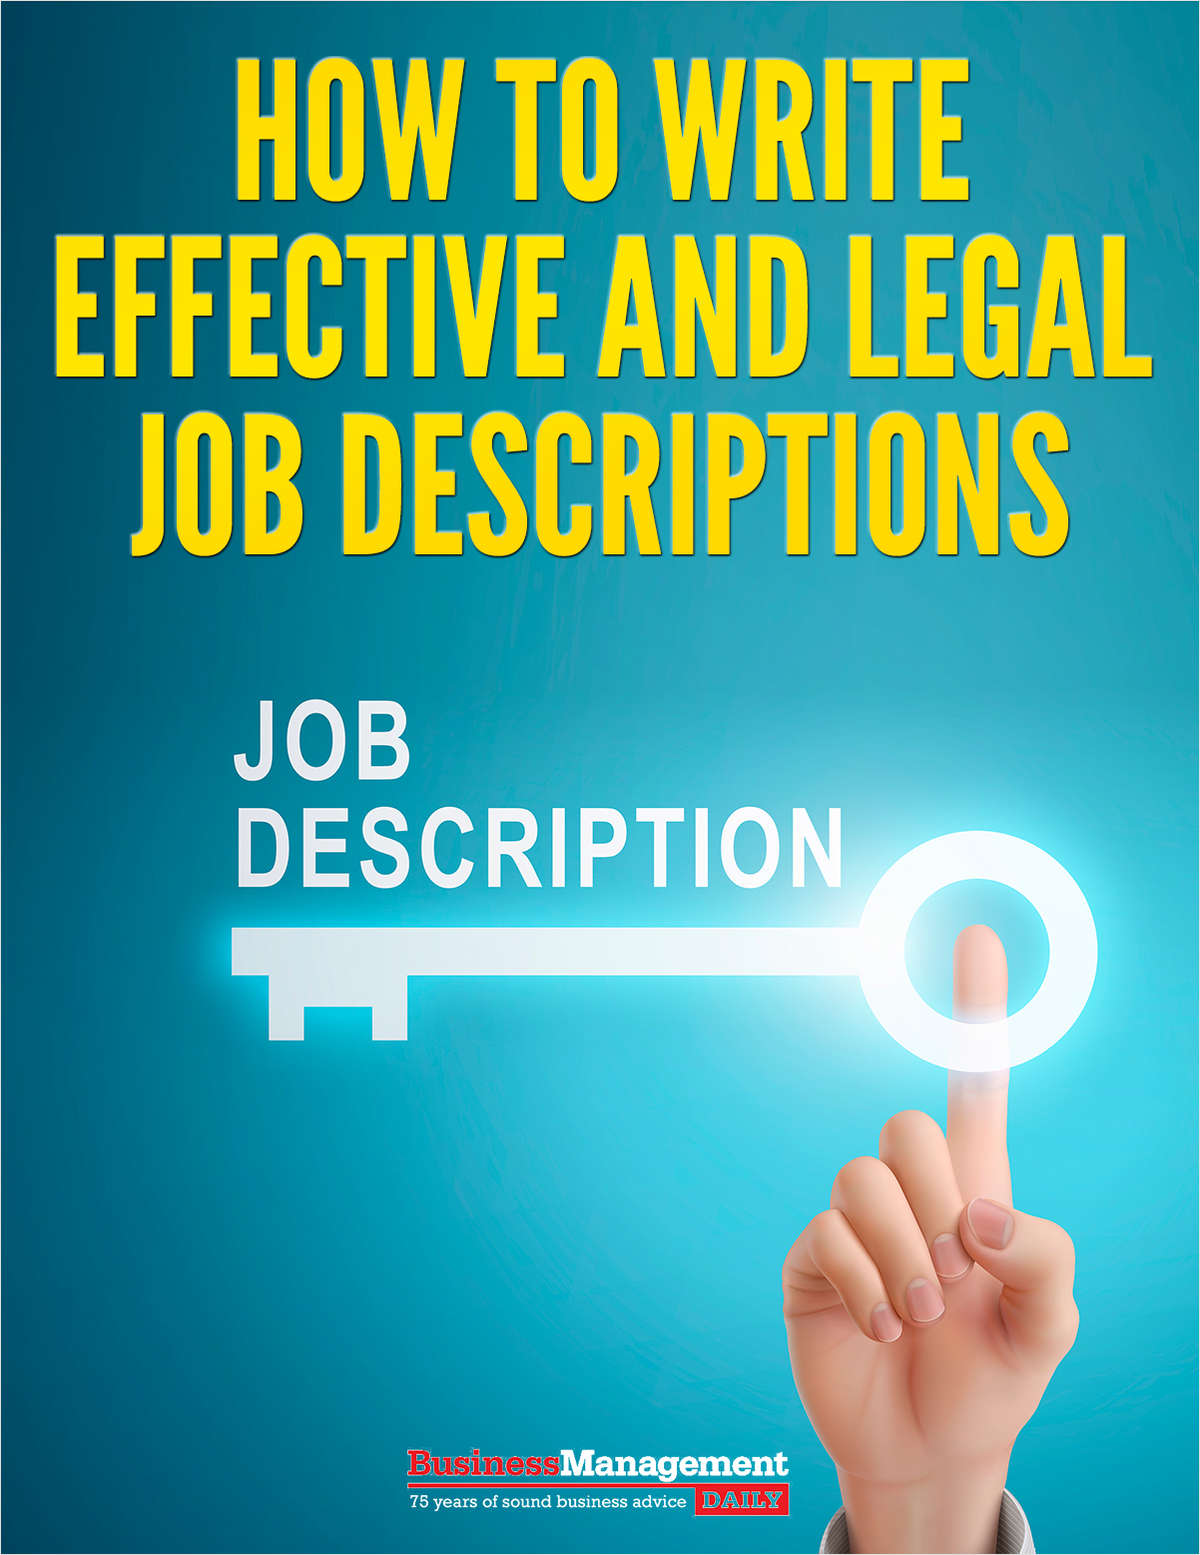 How to Write Effective and Legal Job Descriptions